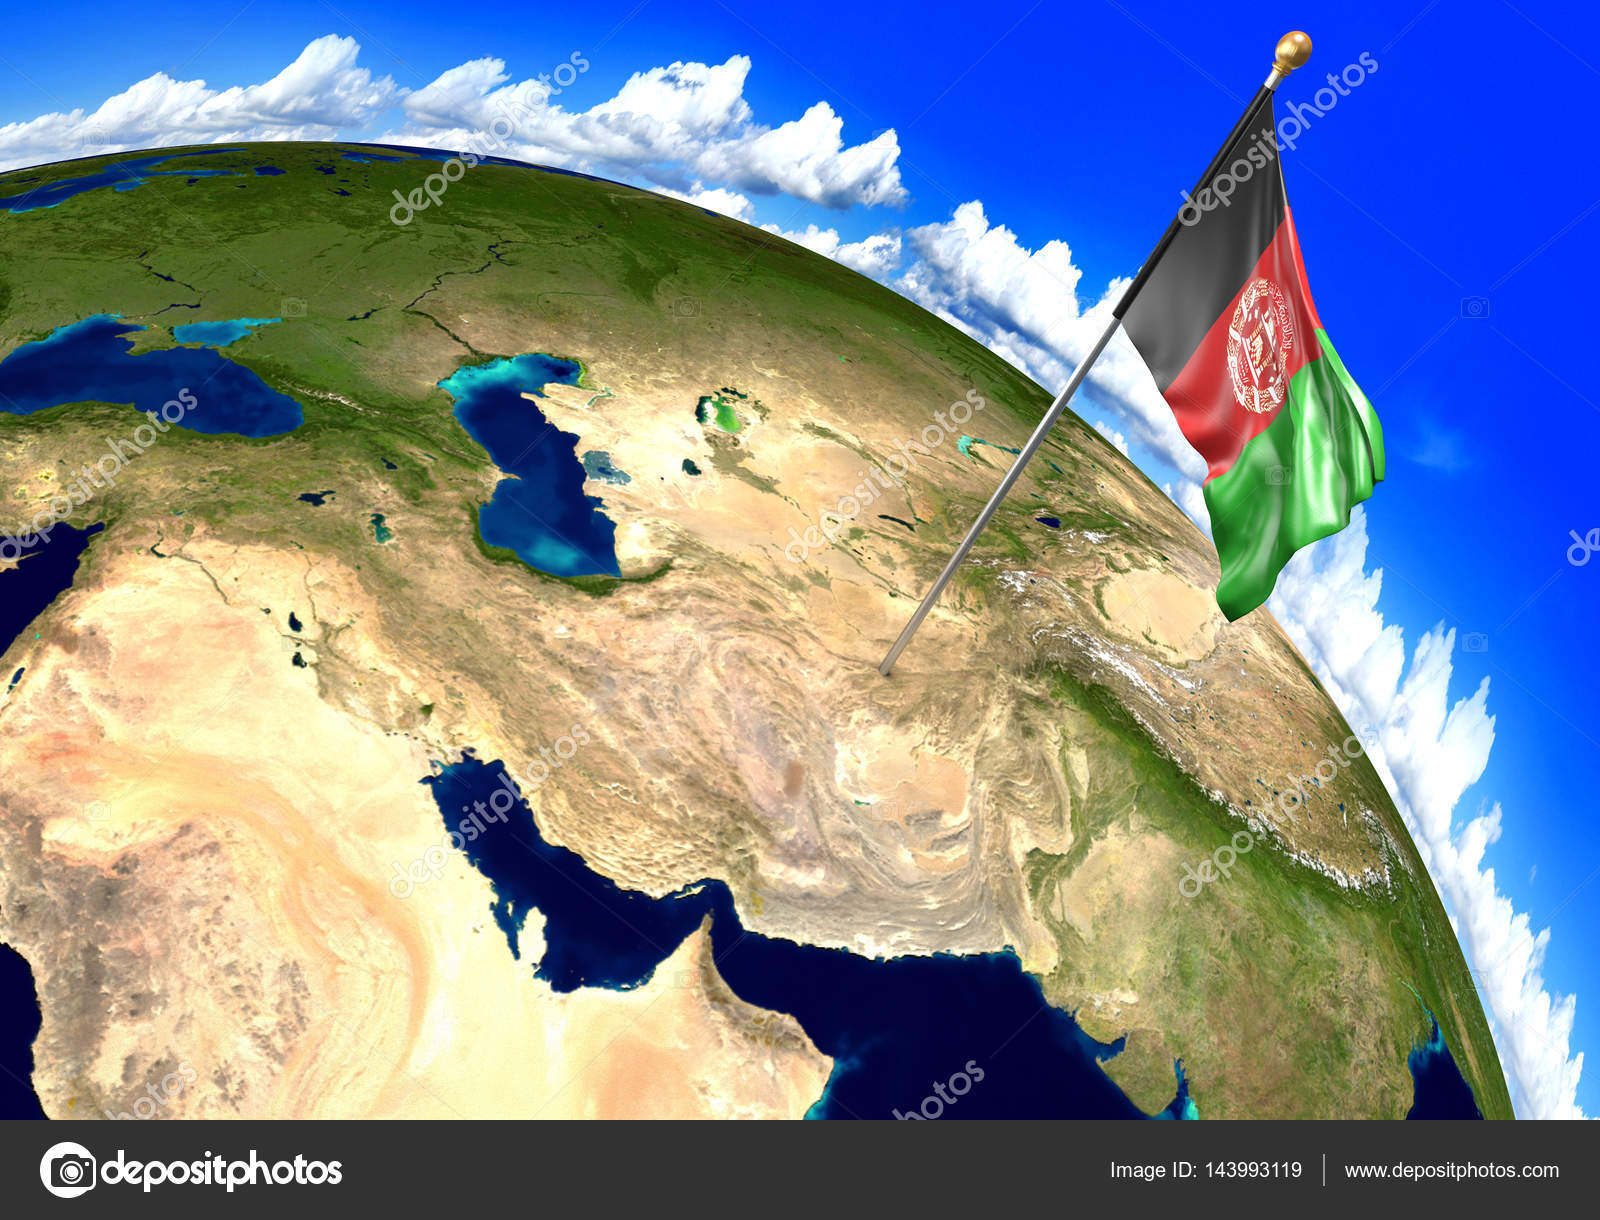 Afghanistan national flag marking the country location on world 3d render of the national flag of afghanistan over the geographic location of the country on a world map parts of this image furnished by nasa gumiabroncs Images